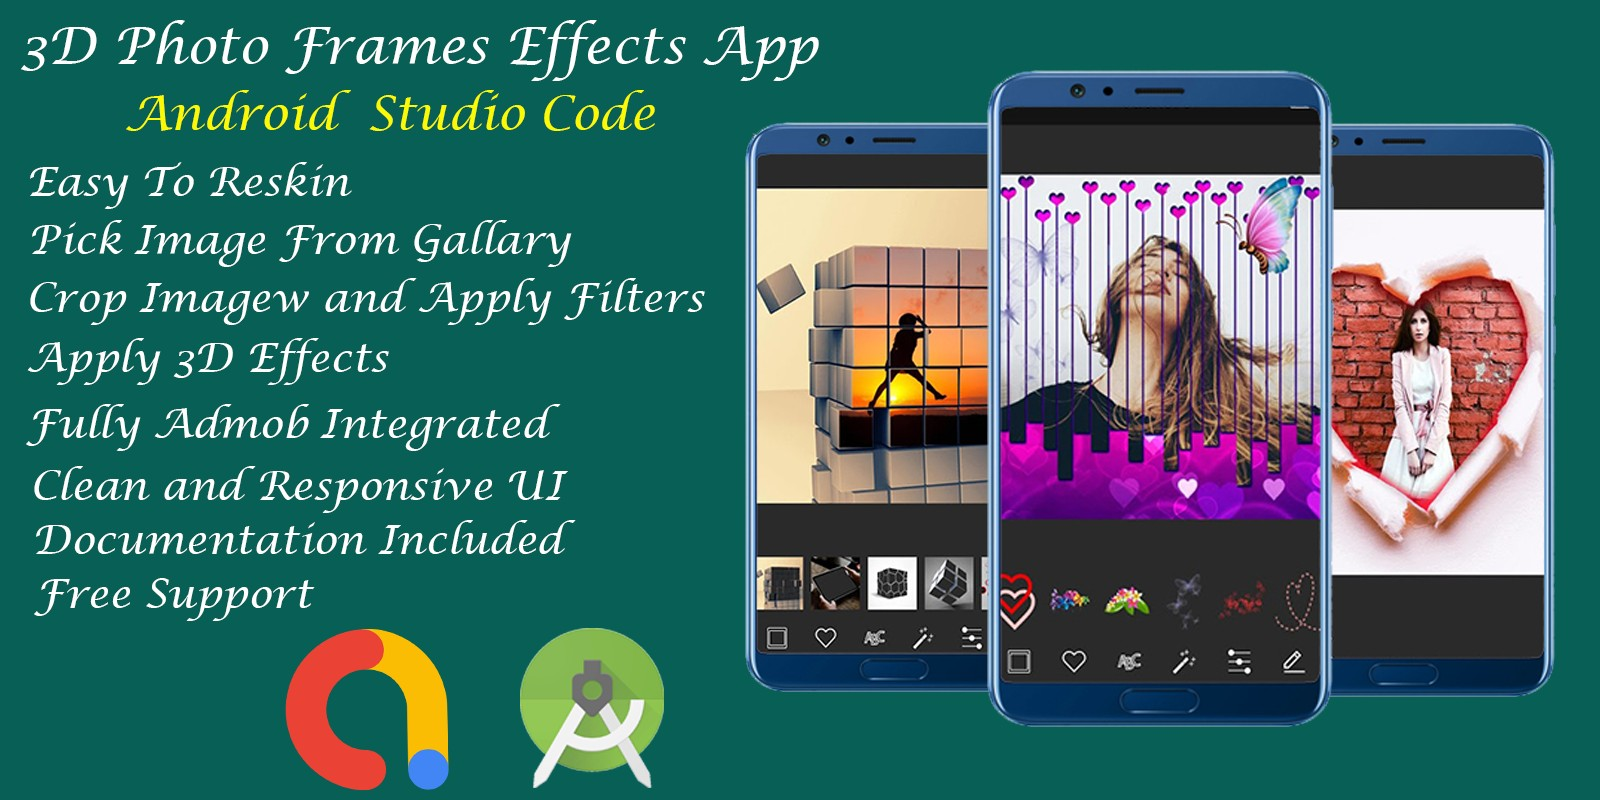 3D Photo Frame Effects App - Android Studio Code